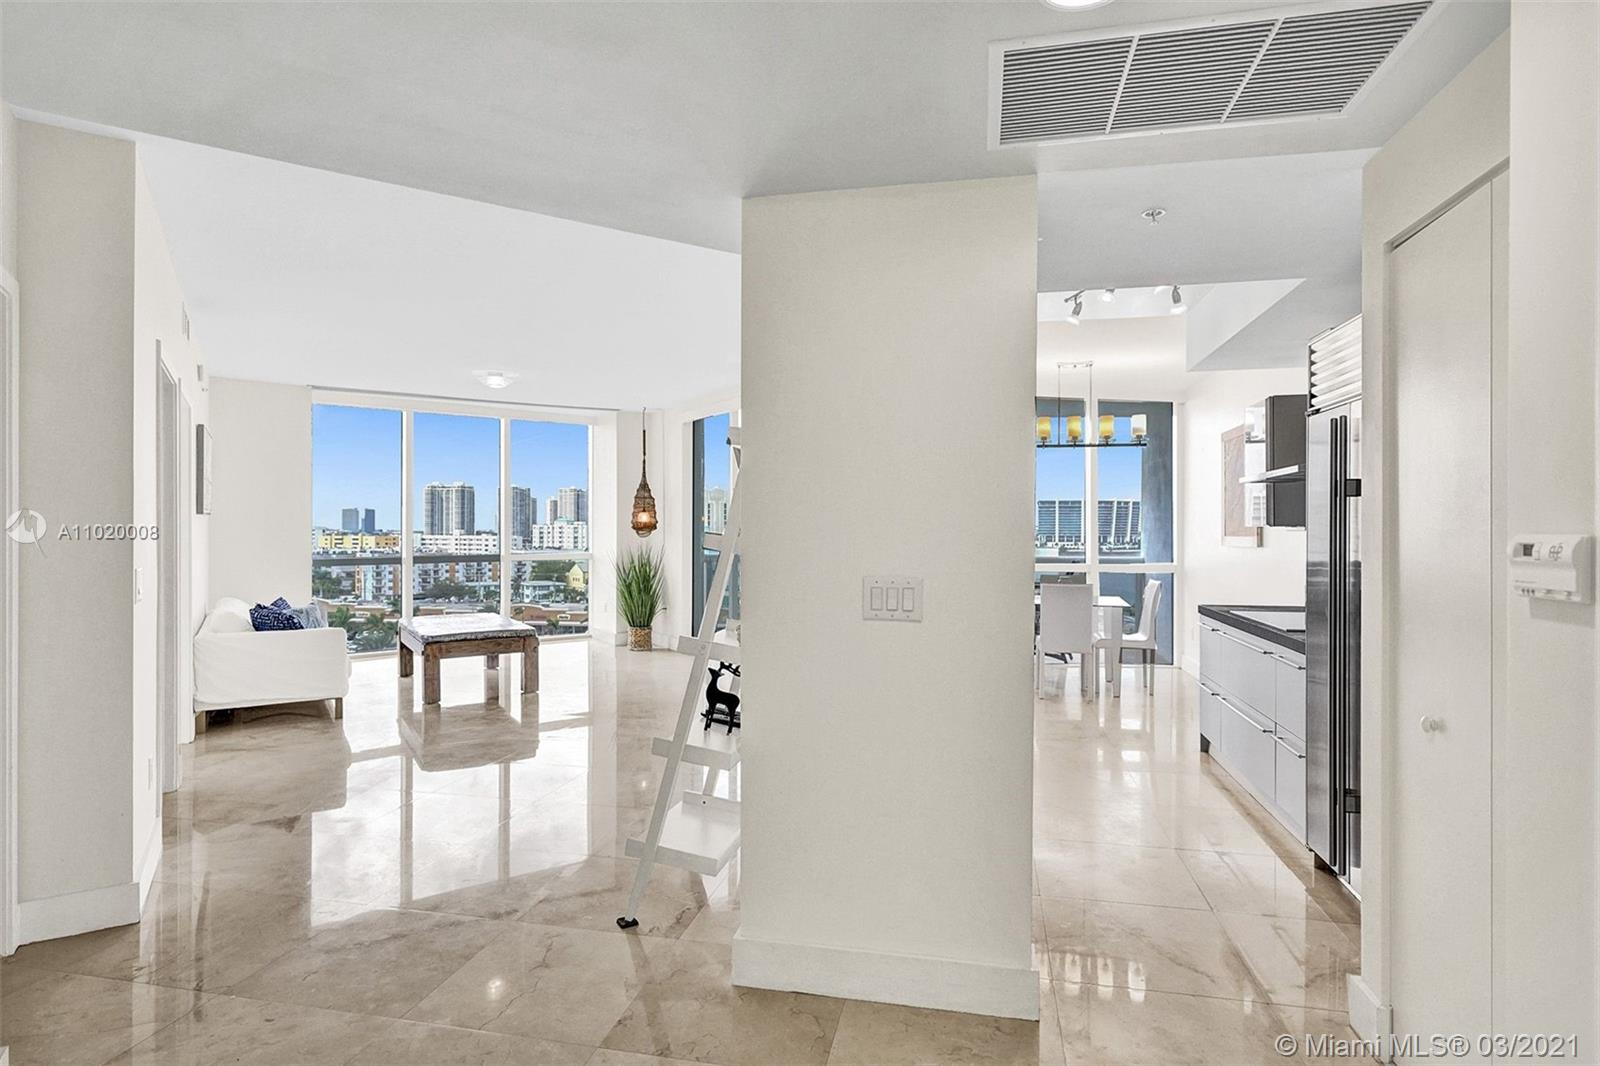 Luxurious 2 Bedroom / 2 Bathroom in Trump Royale. Stainless steel appliances, sub-zero refrigerator, marble floors and much more.. Great Location - 5 minutes from all the best supermarkets and shops in Sunny Isles Beach. 5-Star Hotel Amenities: GYM, Business Center, Tennis Court, 3 Swimming Pools, Jacuzzi, Sauna, SPA, Beauty Salon ,Valet Parking, 24-hour Security. Walking distance to Sunny Isles Norman Edelcup K-8 School.